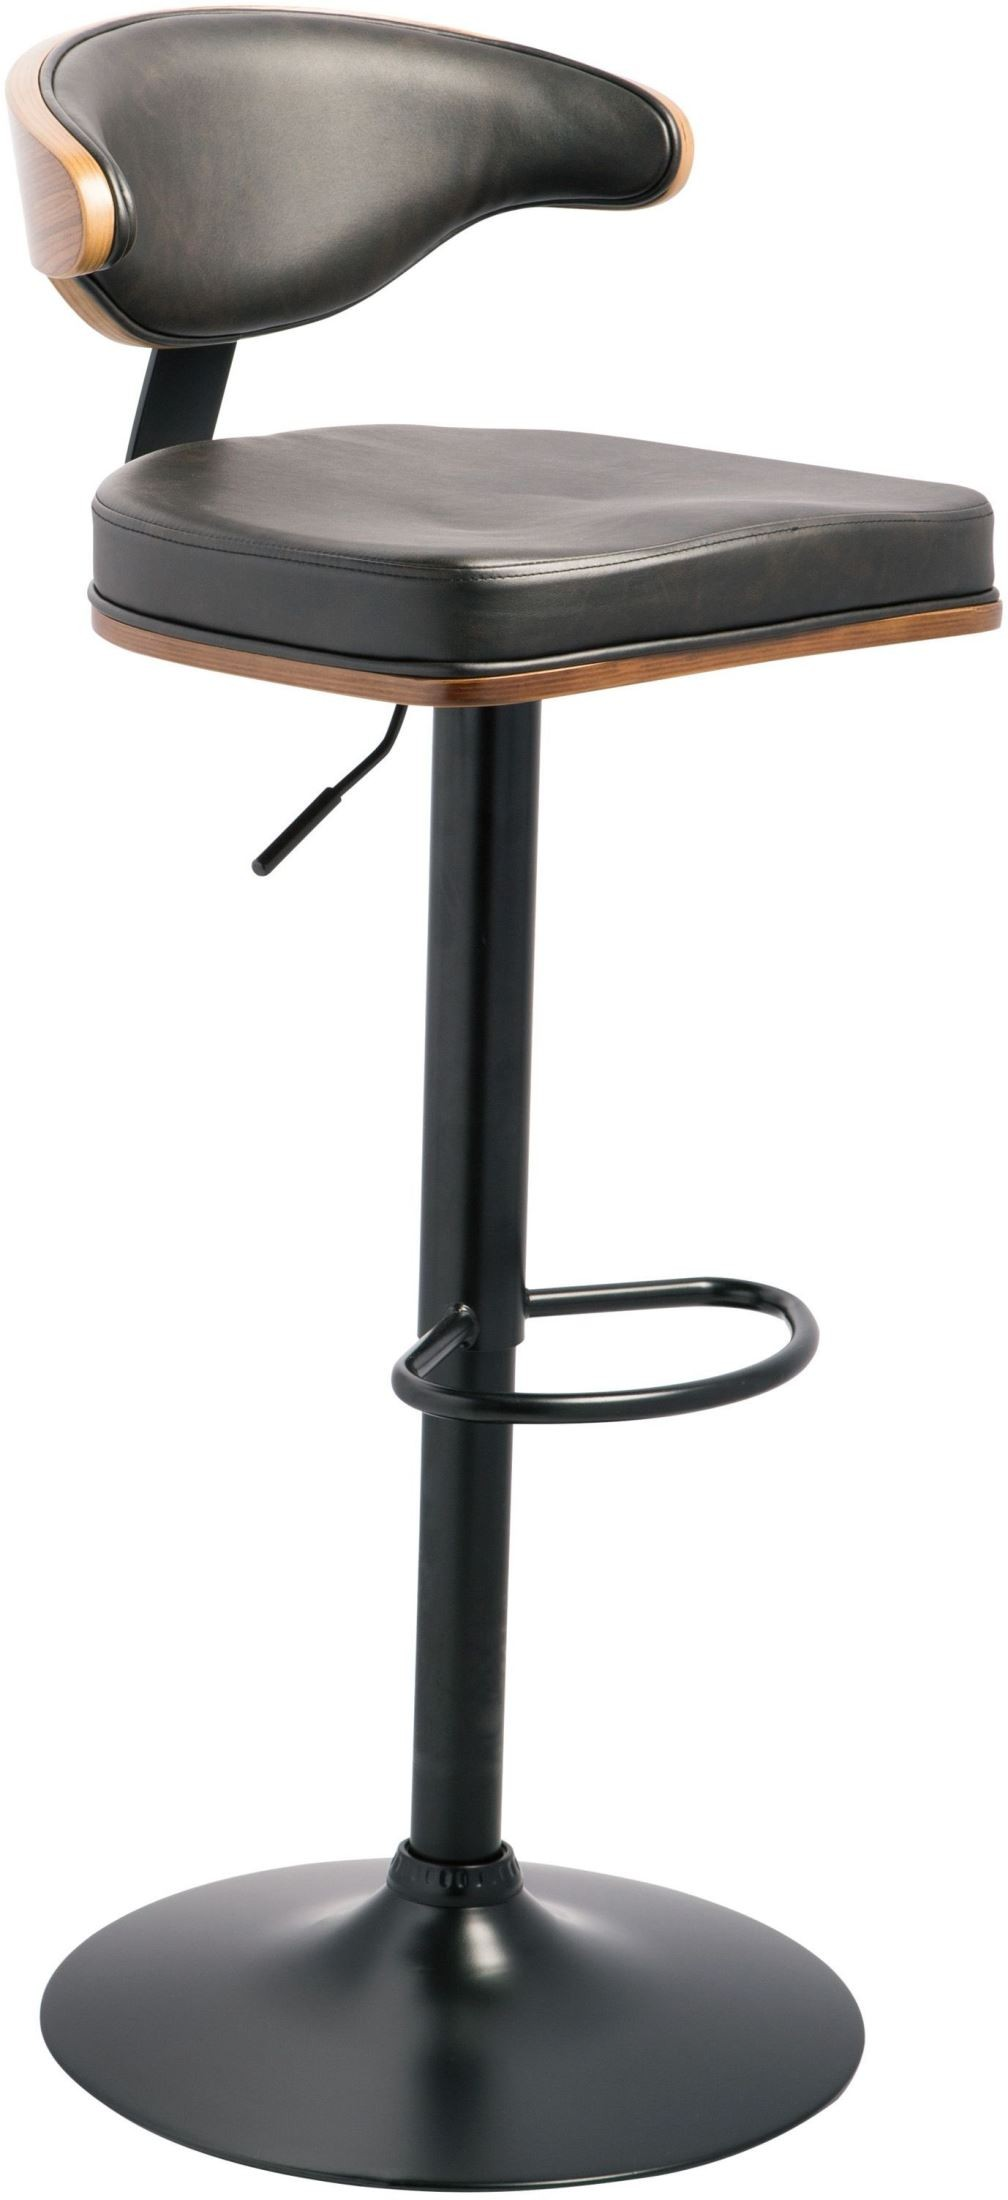 Brown And Black Tall Upholstered Swivel Barstool D120 330